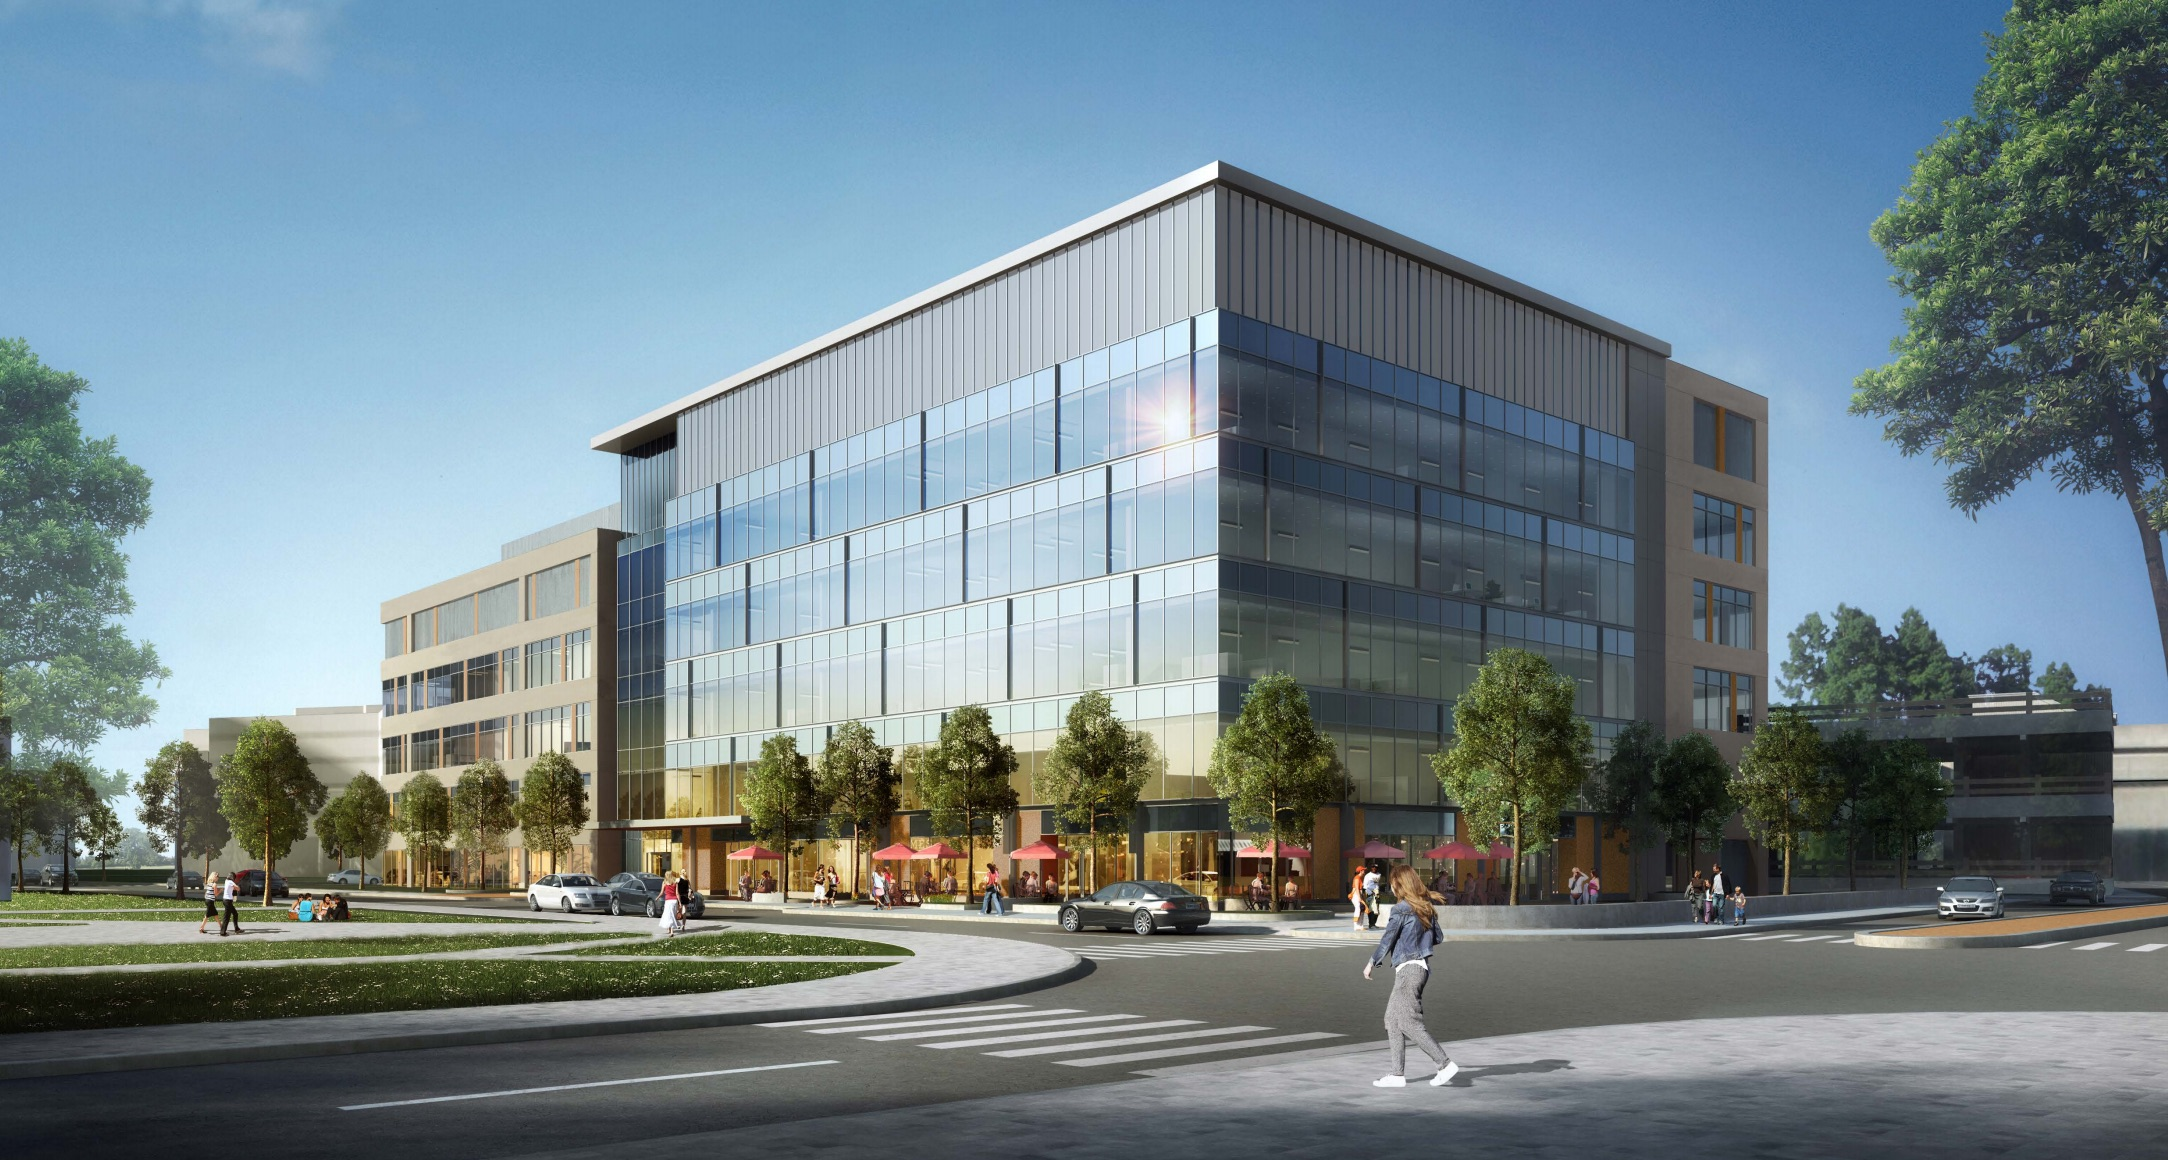 35 cambridgepark drive alewife station cambridge office retail space the davis companies development project spagnolo gisness associates architect